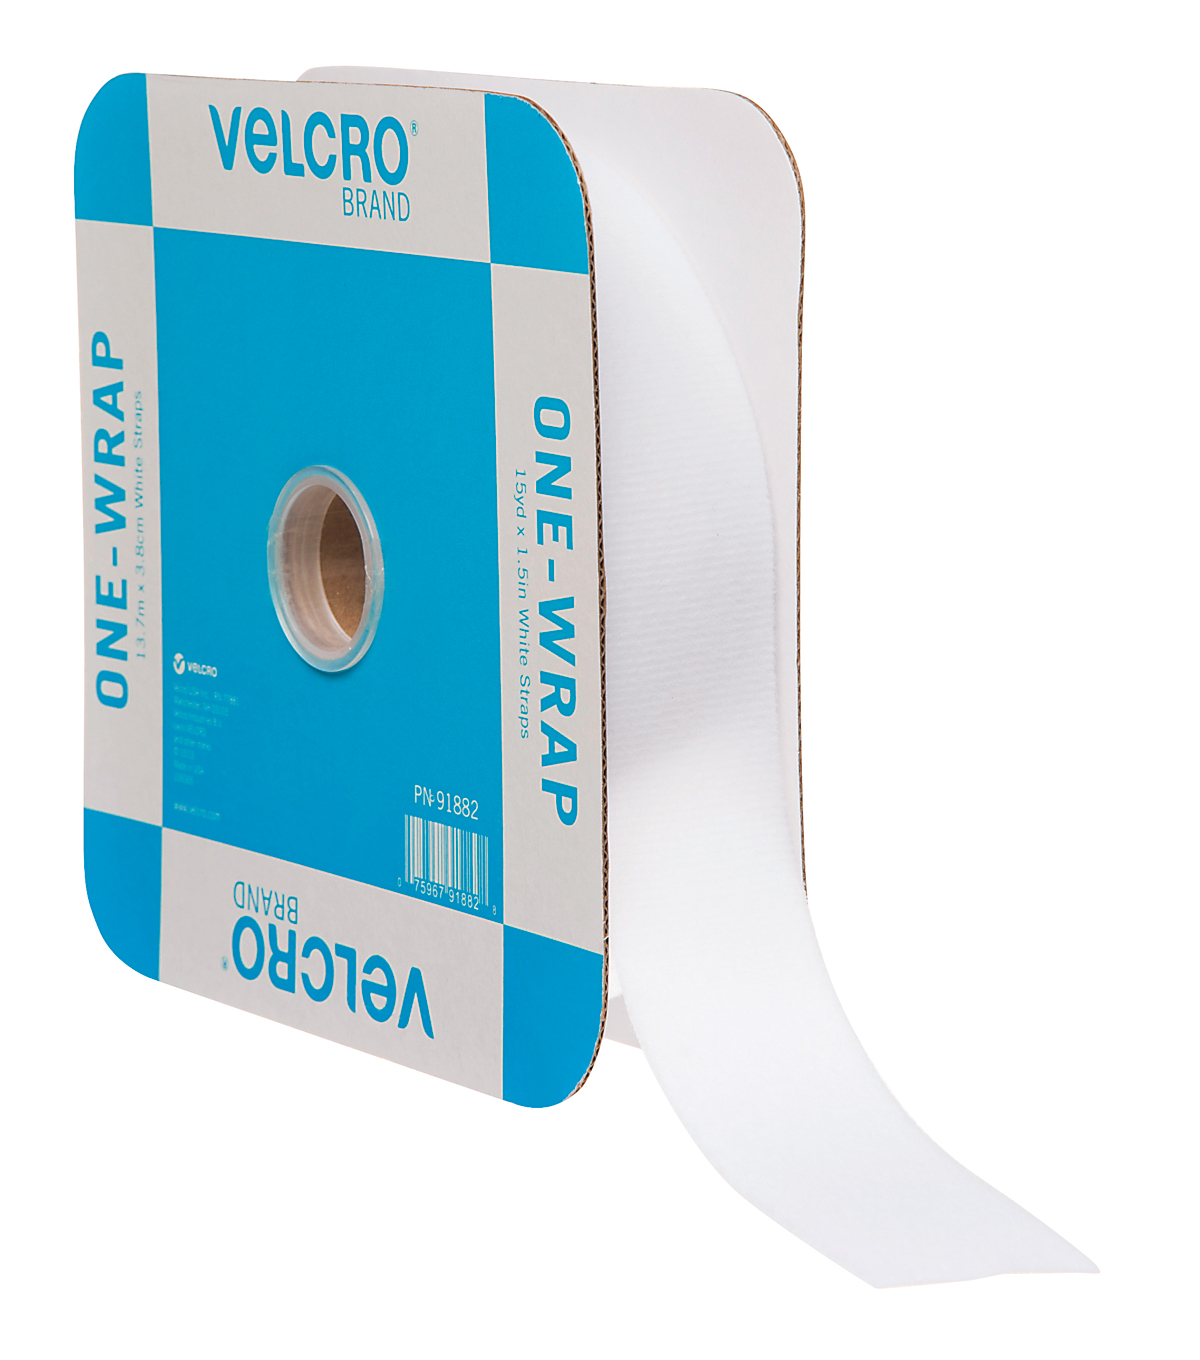 VELCRO Brand ONE-WRAP Roll 45ft x 1 1/2in Tape, White, Flange